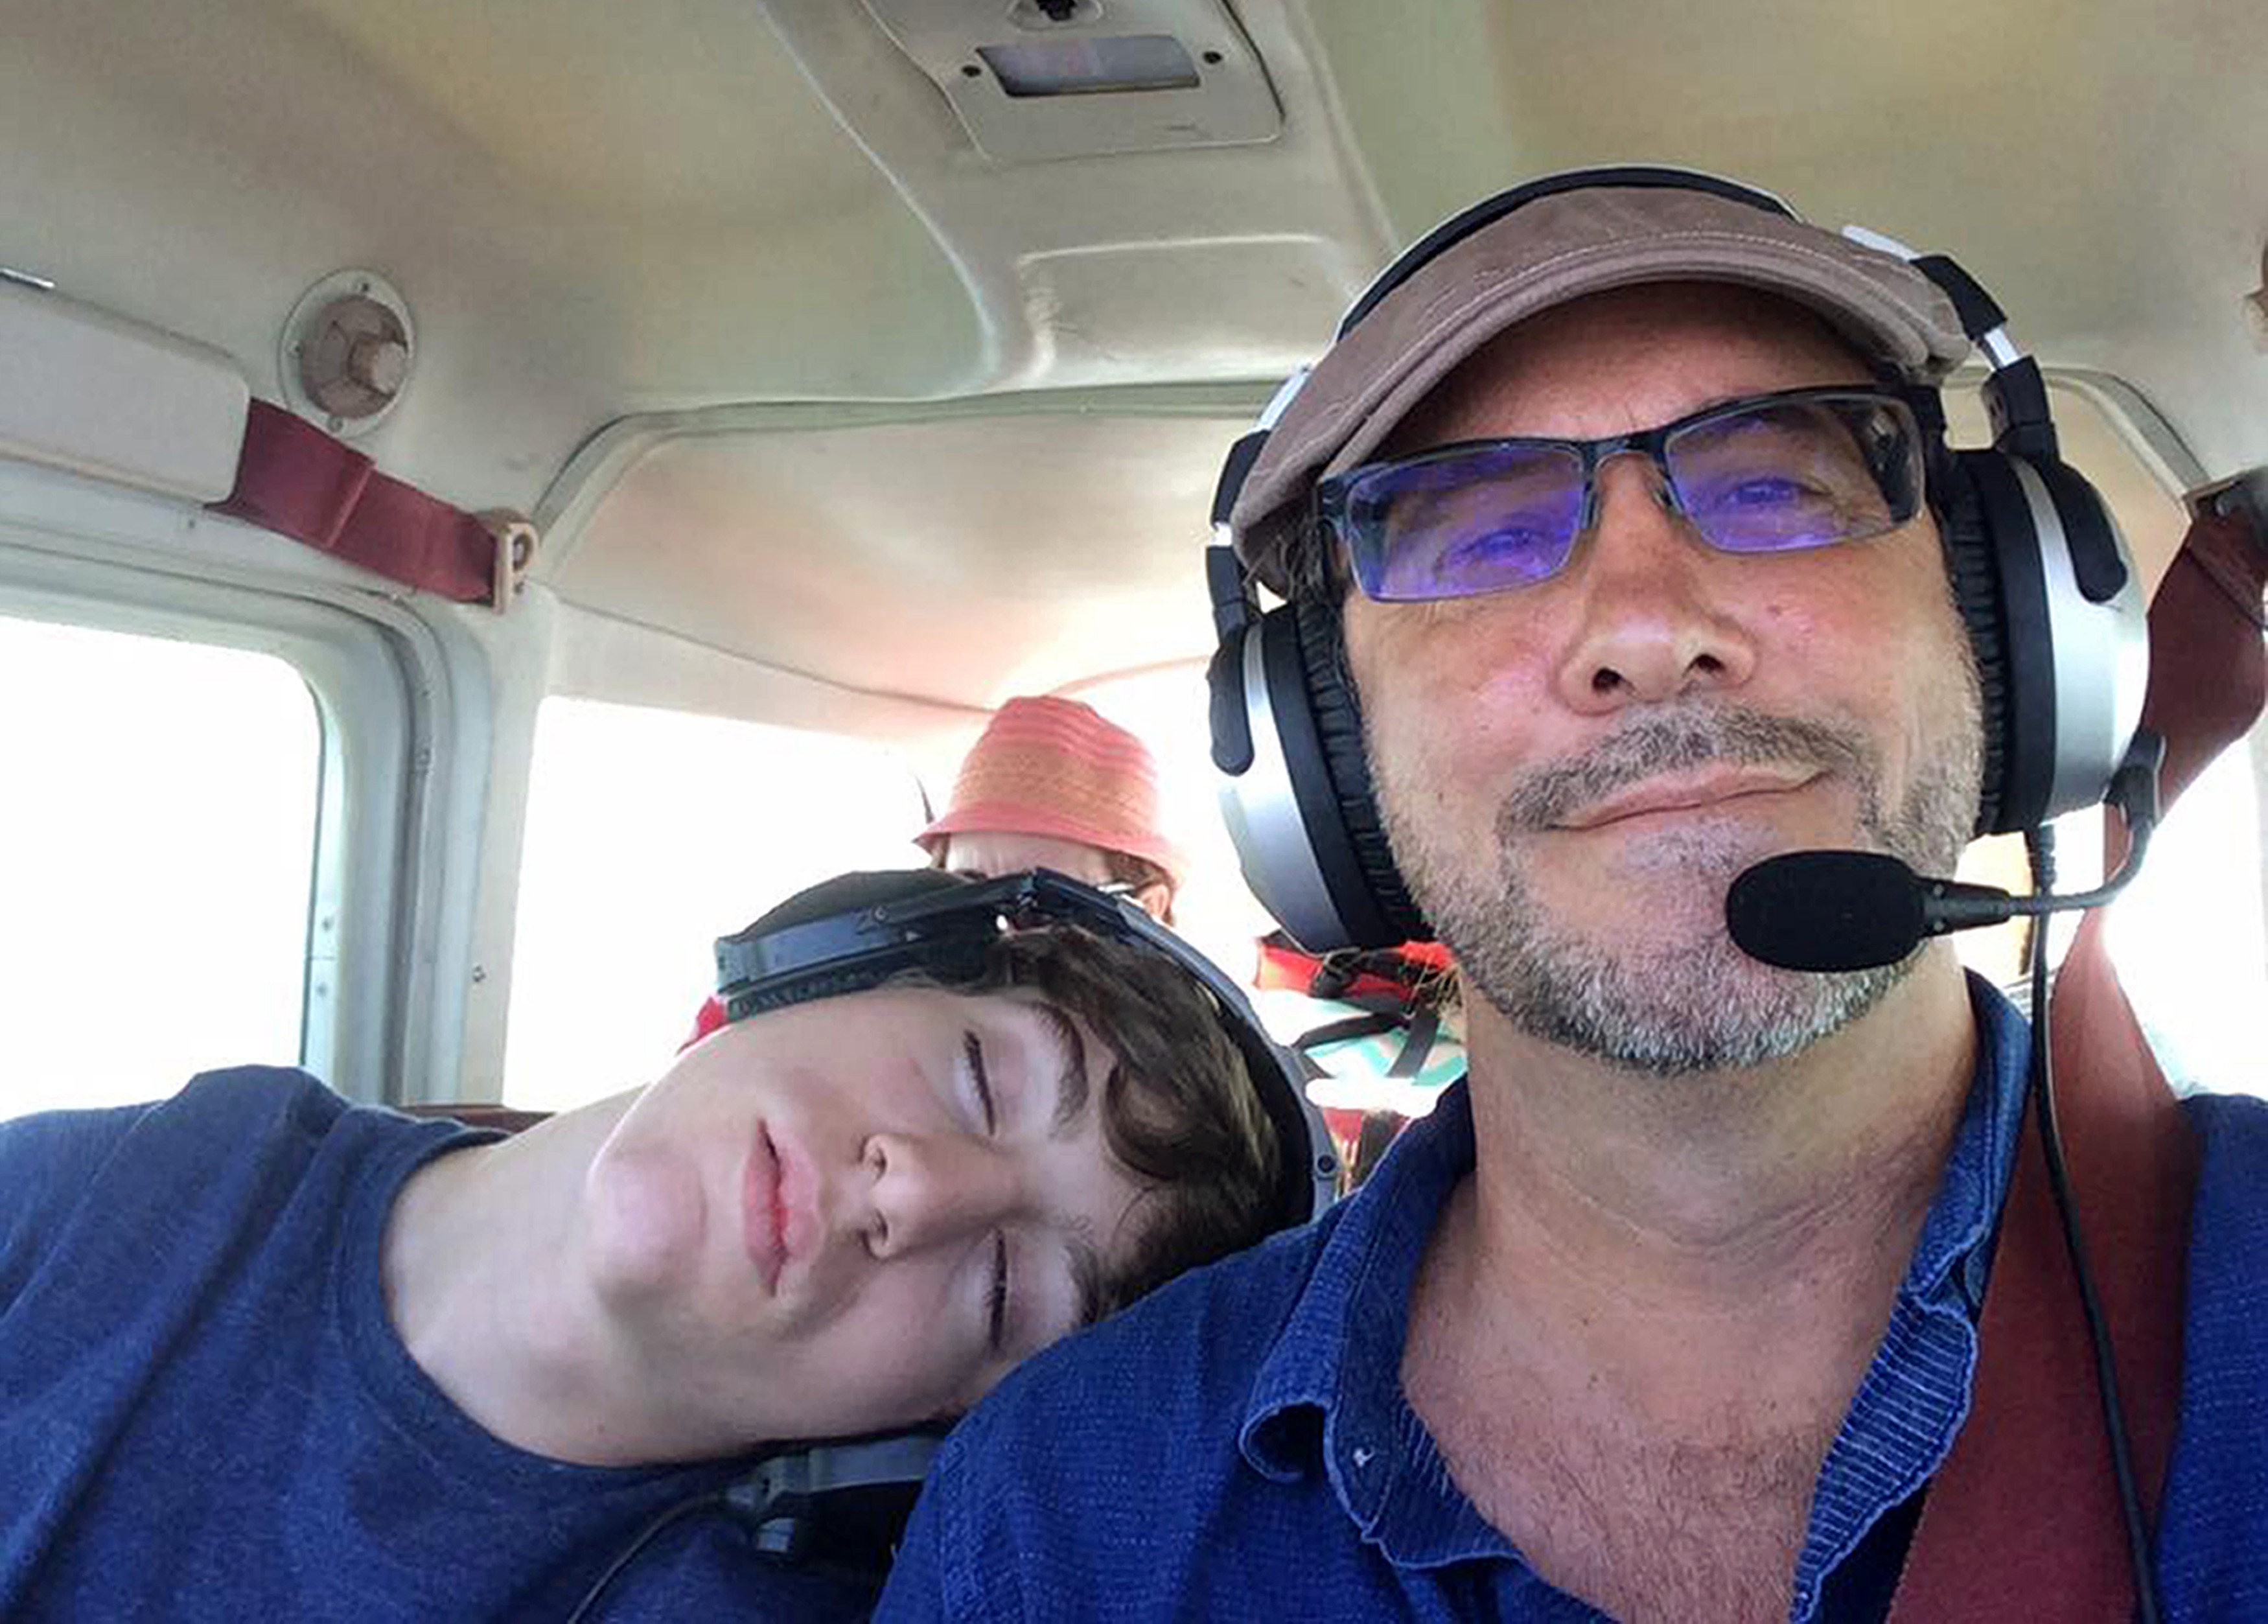 Ardis Sikes, now 17, sleeps on pilot Gerald Herbert's shoulder during a family trip in a Cessna 172. Photo courtesy of Gerald Herbert.